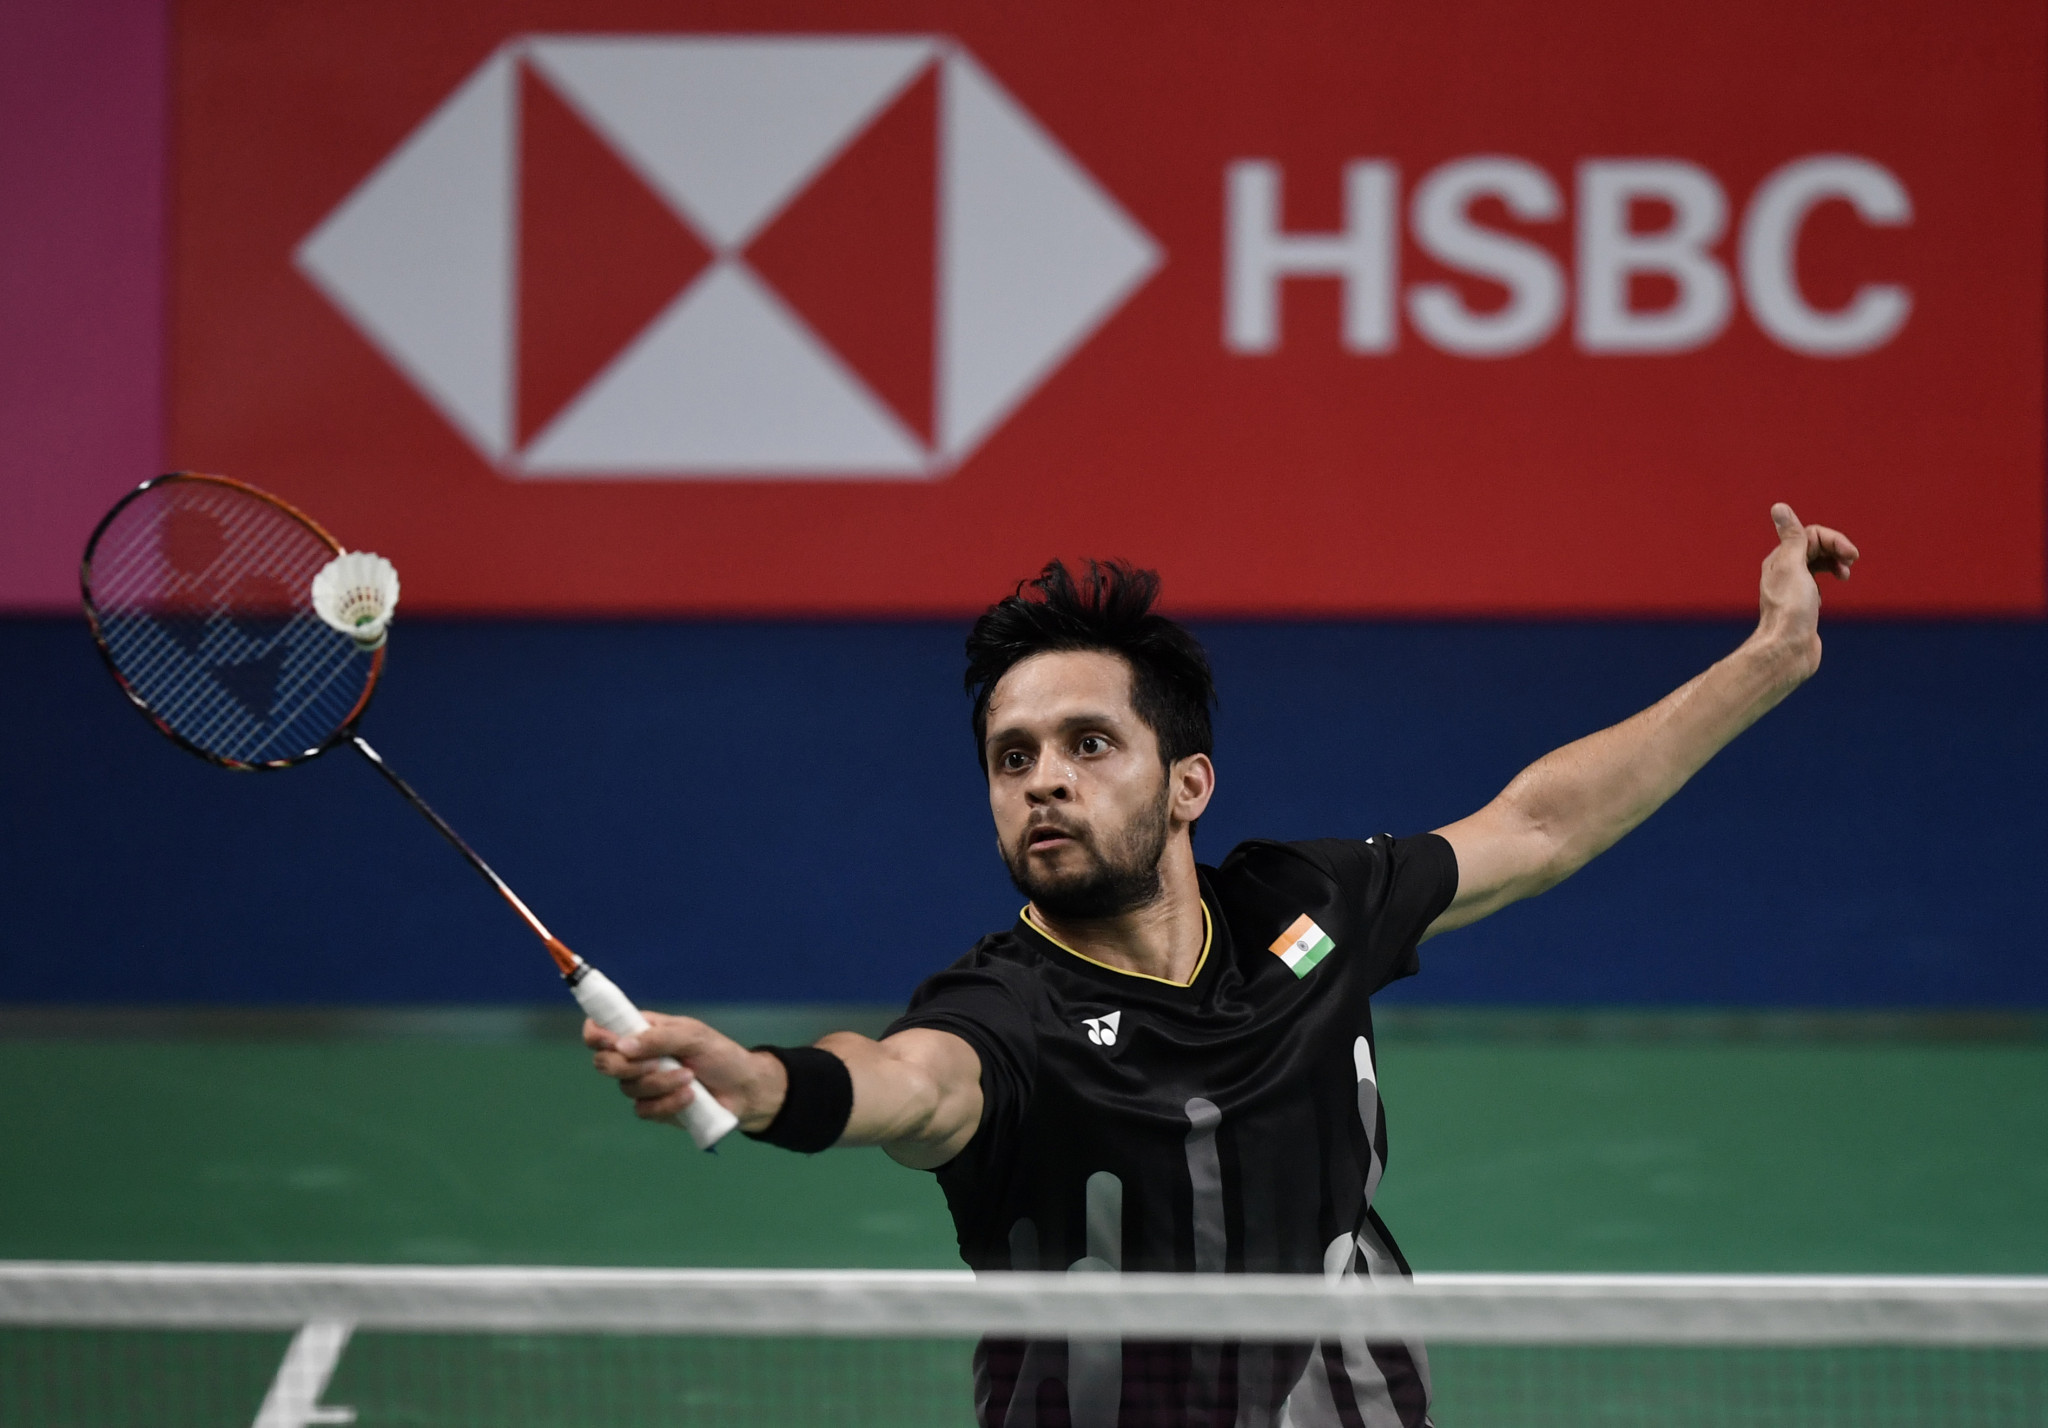 Parupalli Kashyap also called for an extension to the Tokyo 2020 window ©Getty Images